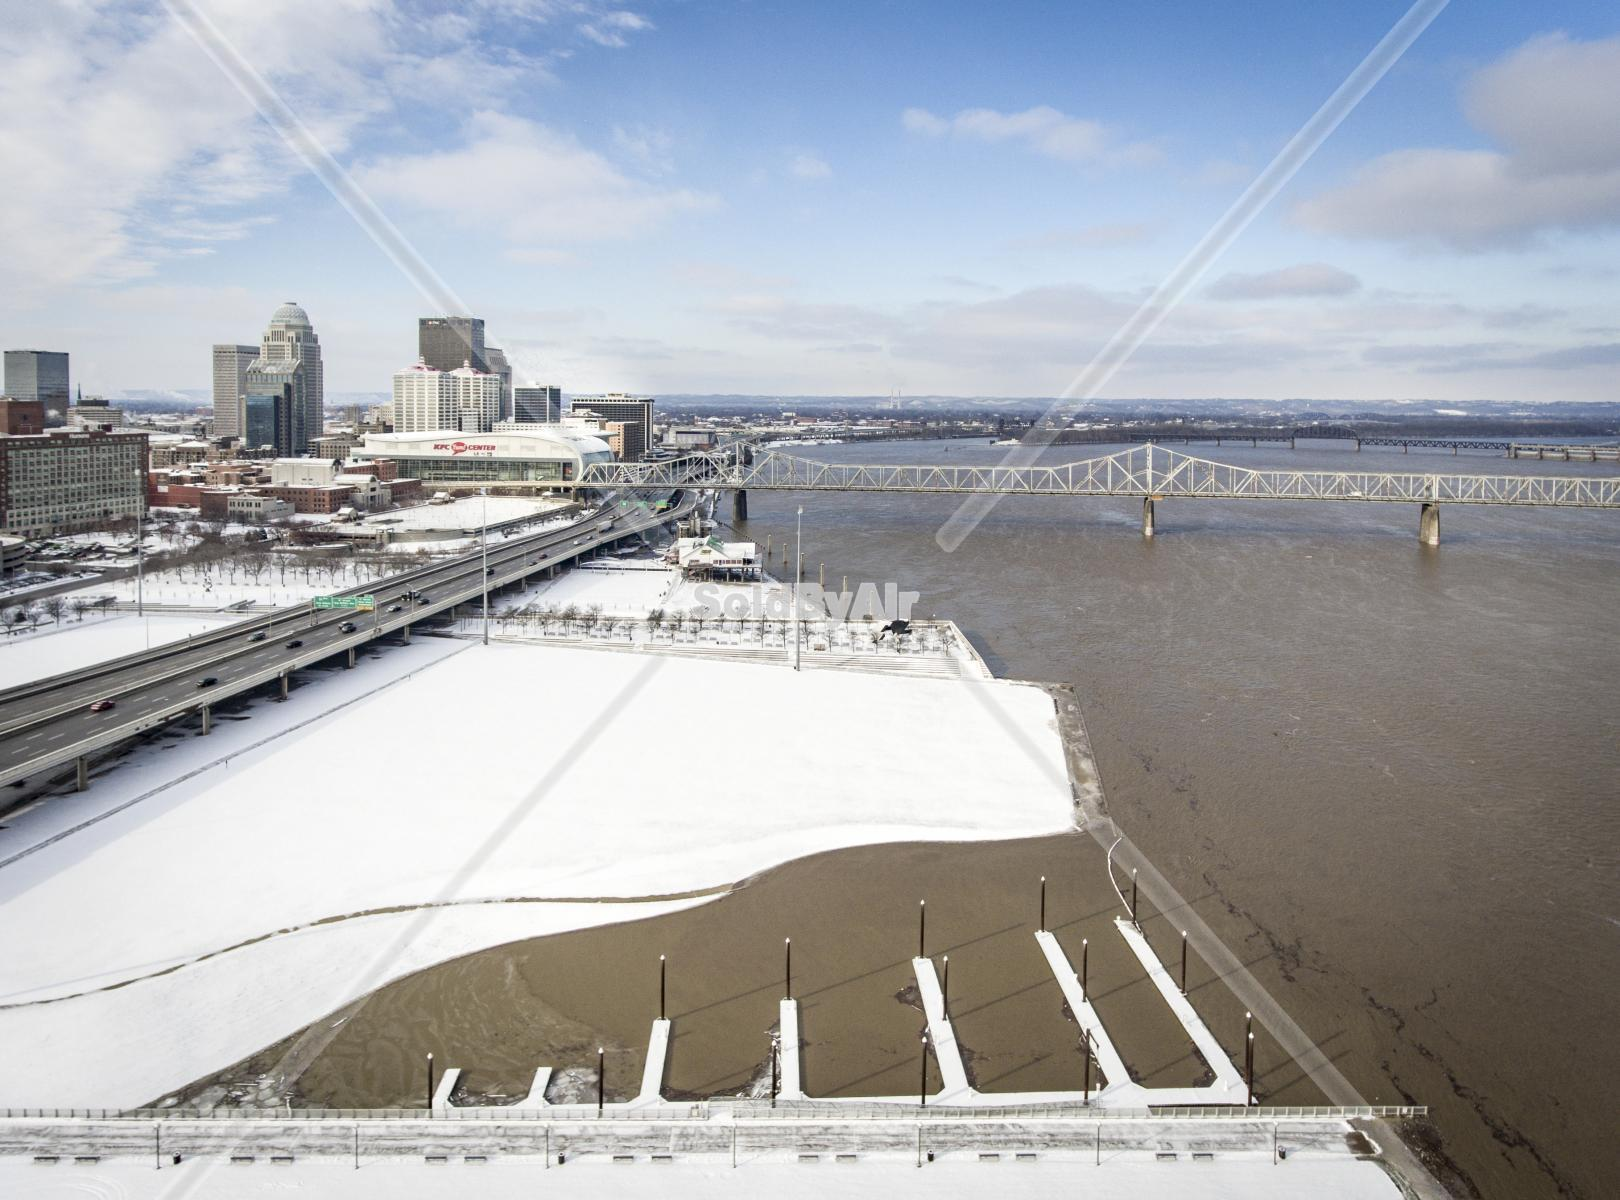 Drone Photo of Waterfront covered in snow in Louisville Kentucky